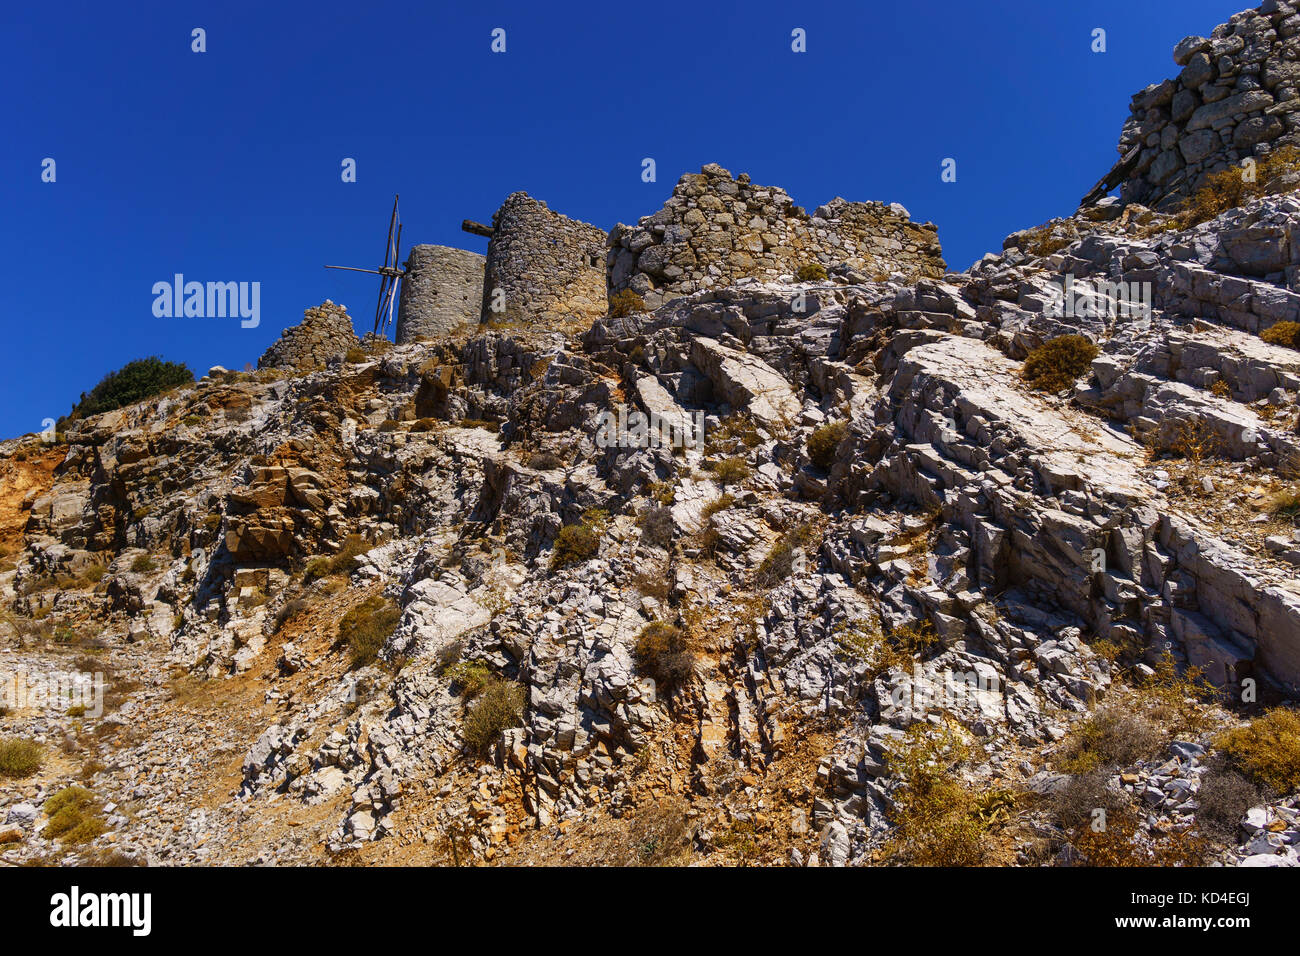 Ruins of encient windmills built in 15th century. Lassithi Plateau, Crete, Greece. Most typical characteristic of - Stock Image